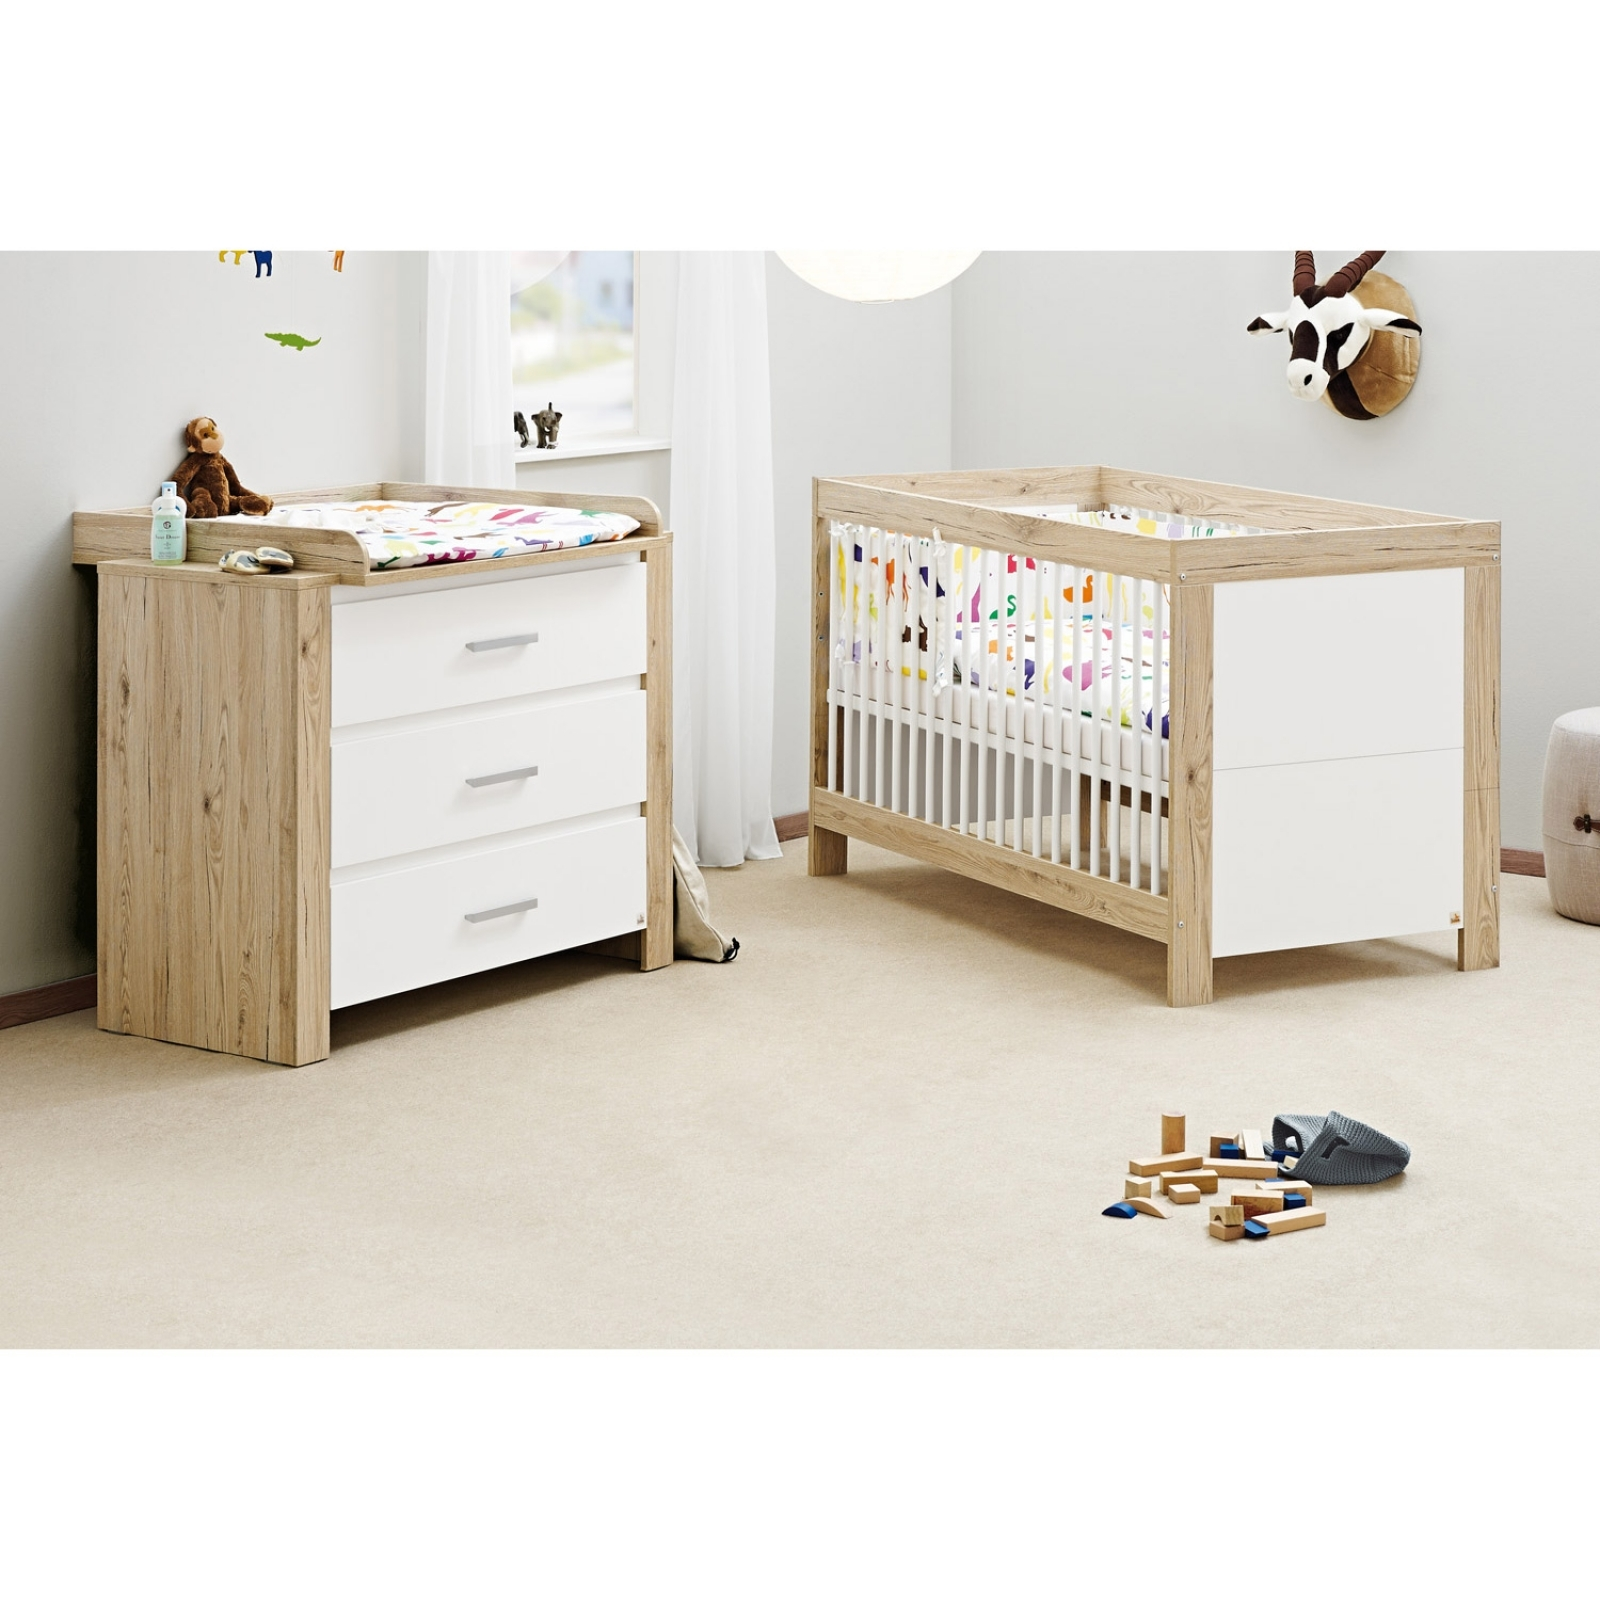 Lit b b volutif et commode langer ch ne massif naturel - Table a langer lit bebe ...